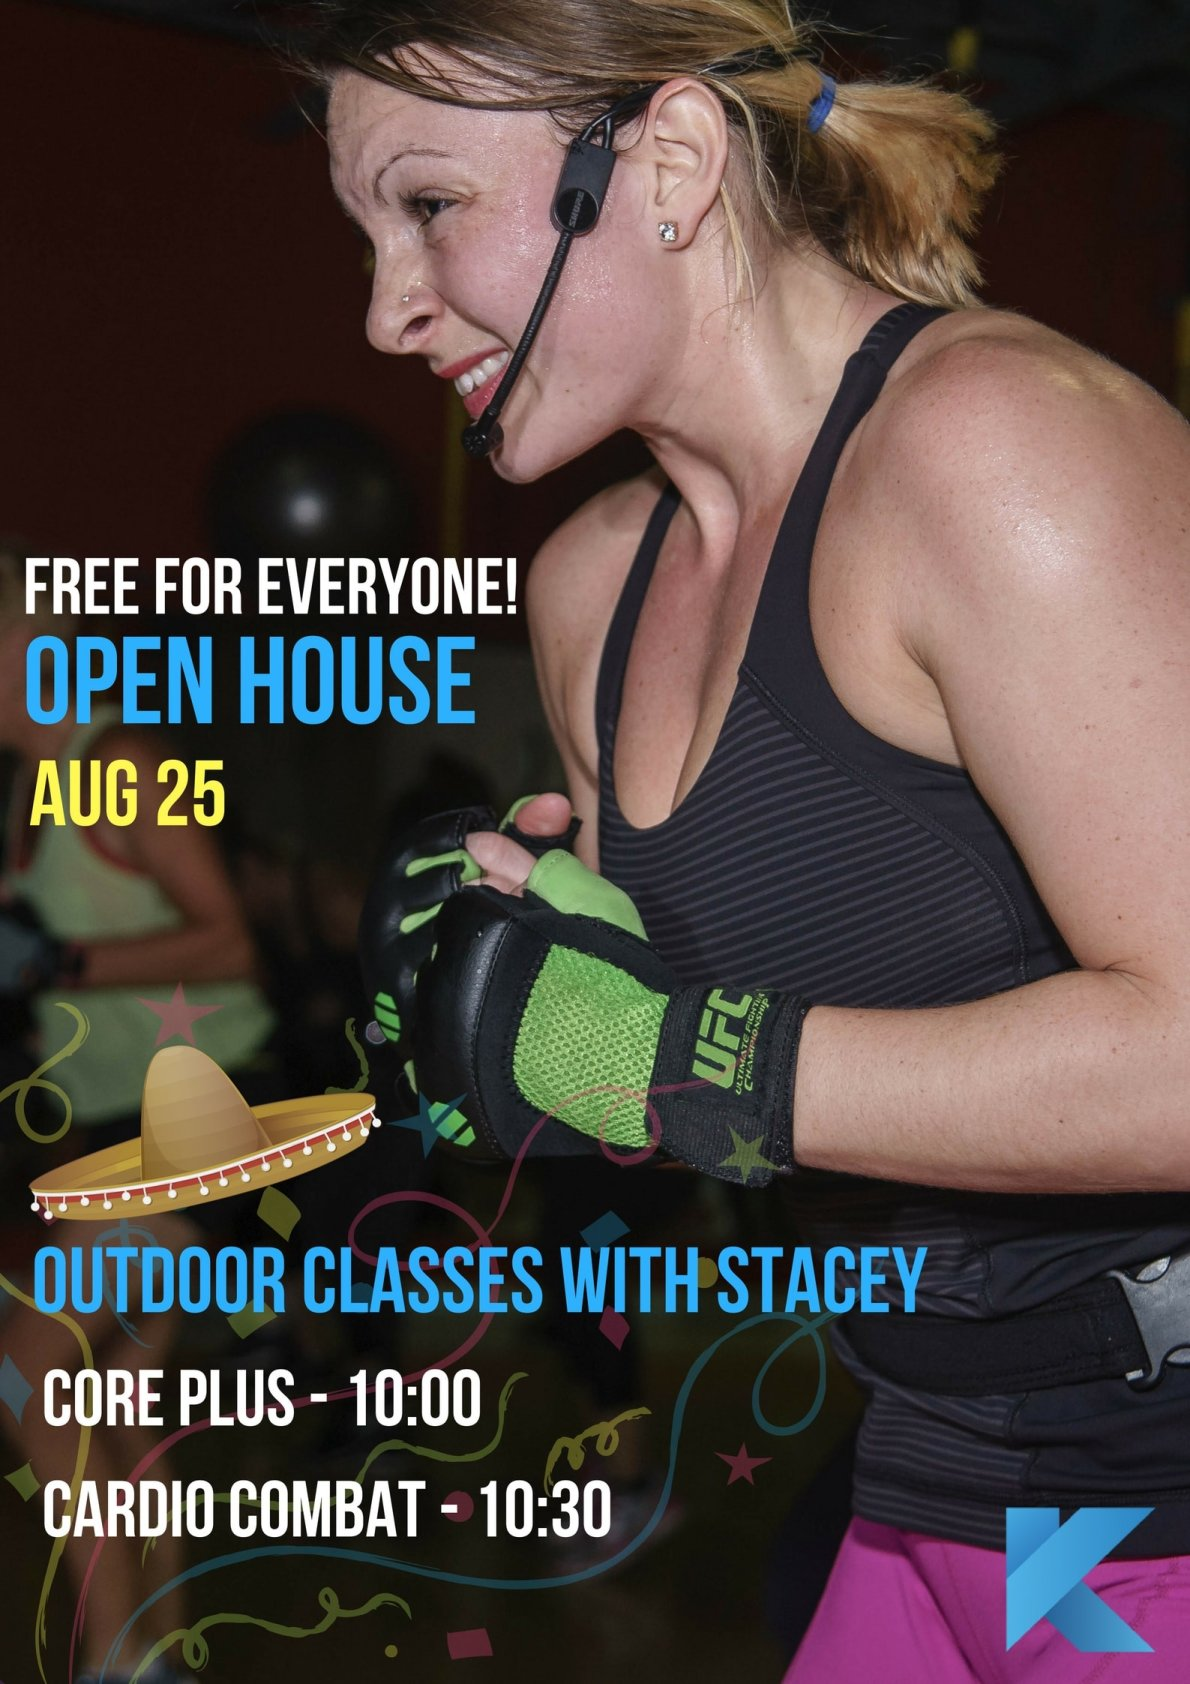 stacey aerobics exercise class instructor open house free for everyone